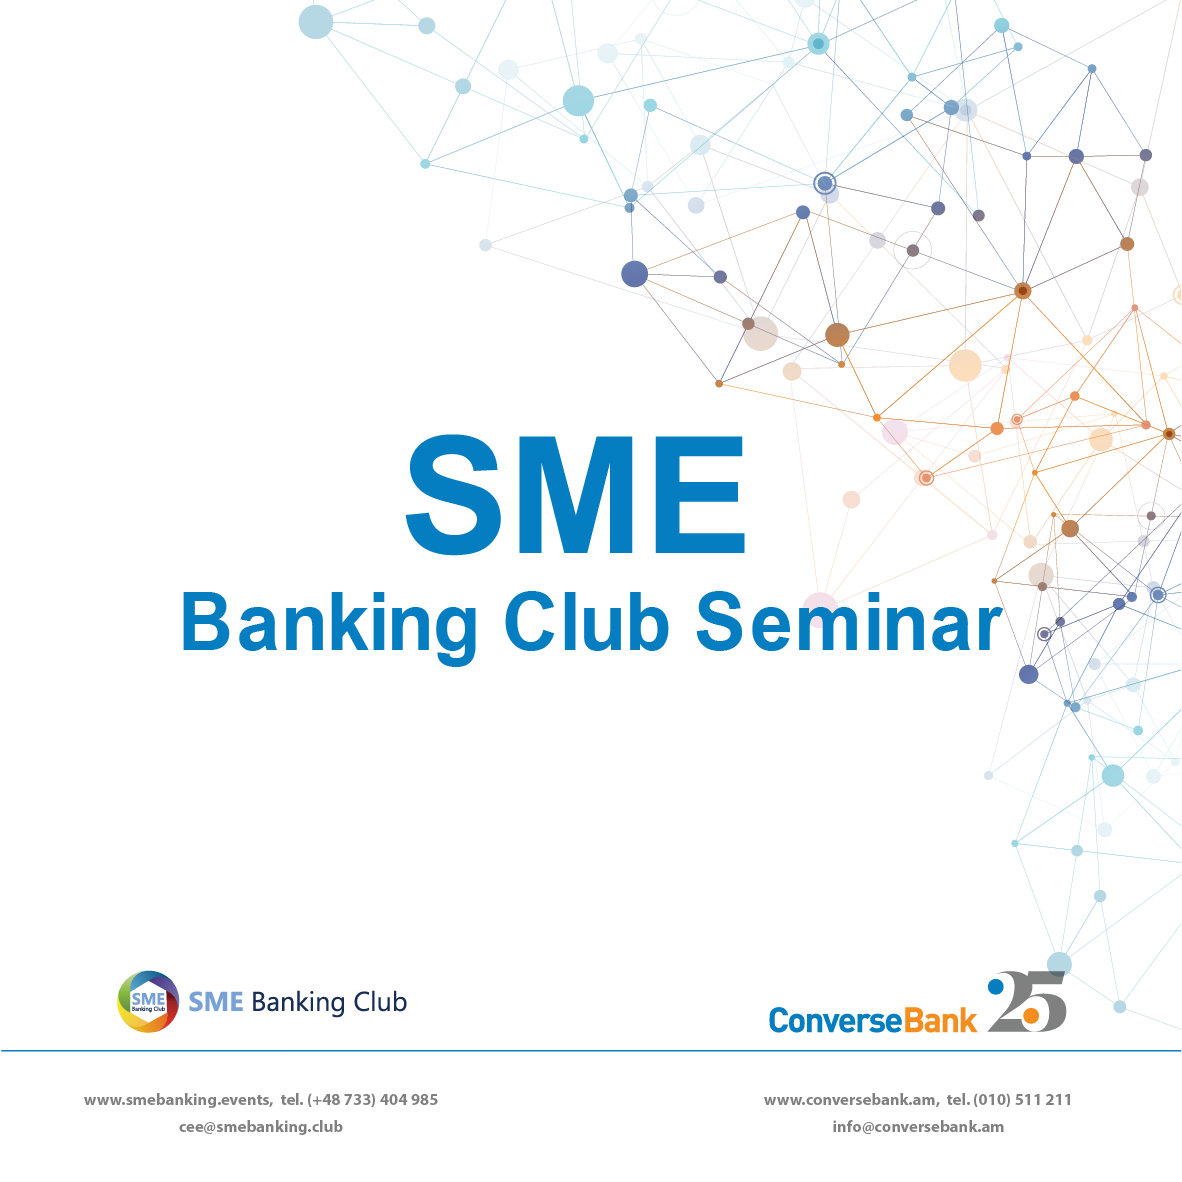 Converse Bank: Another seminar by SME Banking Club will be held in Yerevan